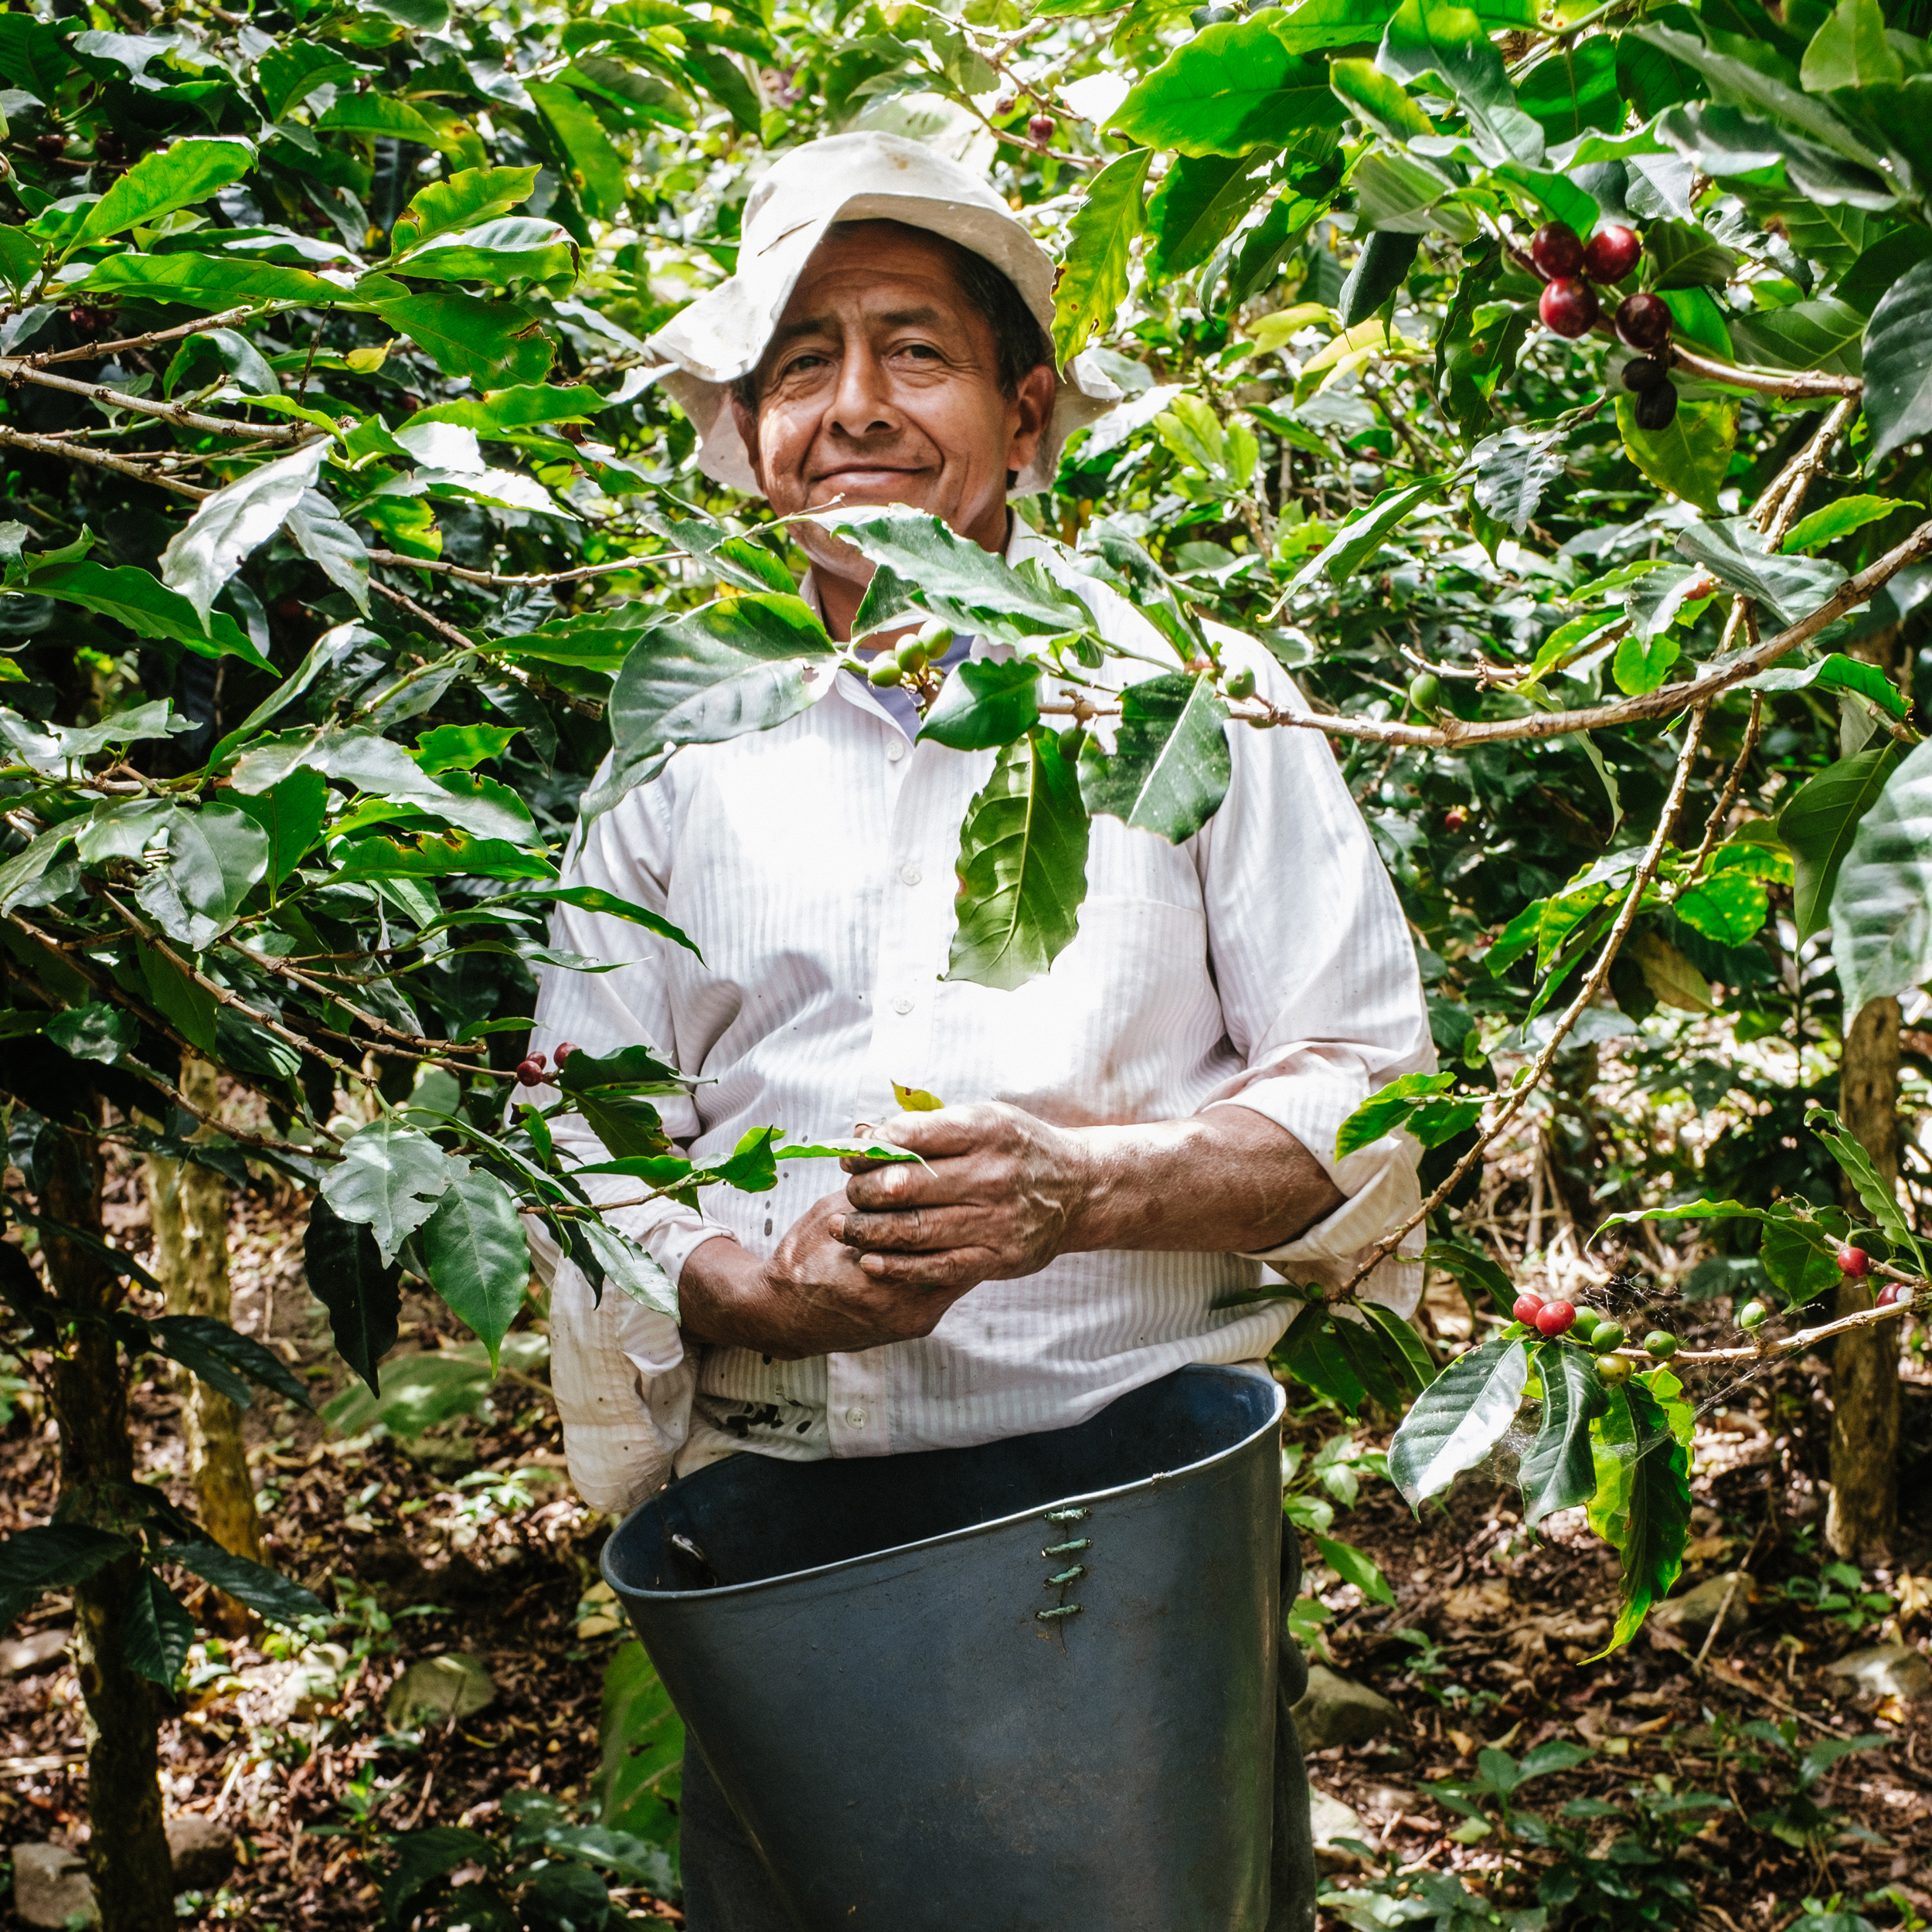 Colombia Argcafe - Deep in the Andean foothills of Colombia's Cauca Department lies Argcafe Growers Association, made up of 102 farmers that give us great structured citrus acidity and a clean finish.